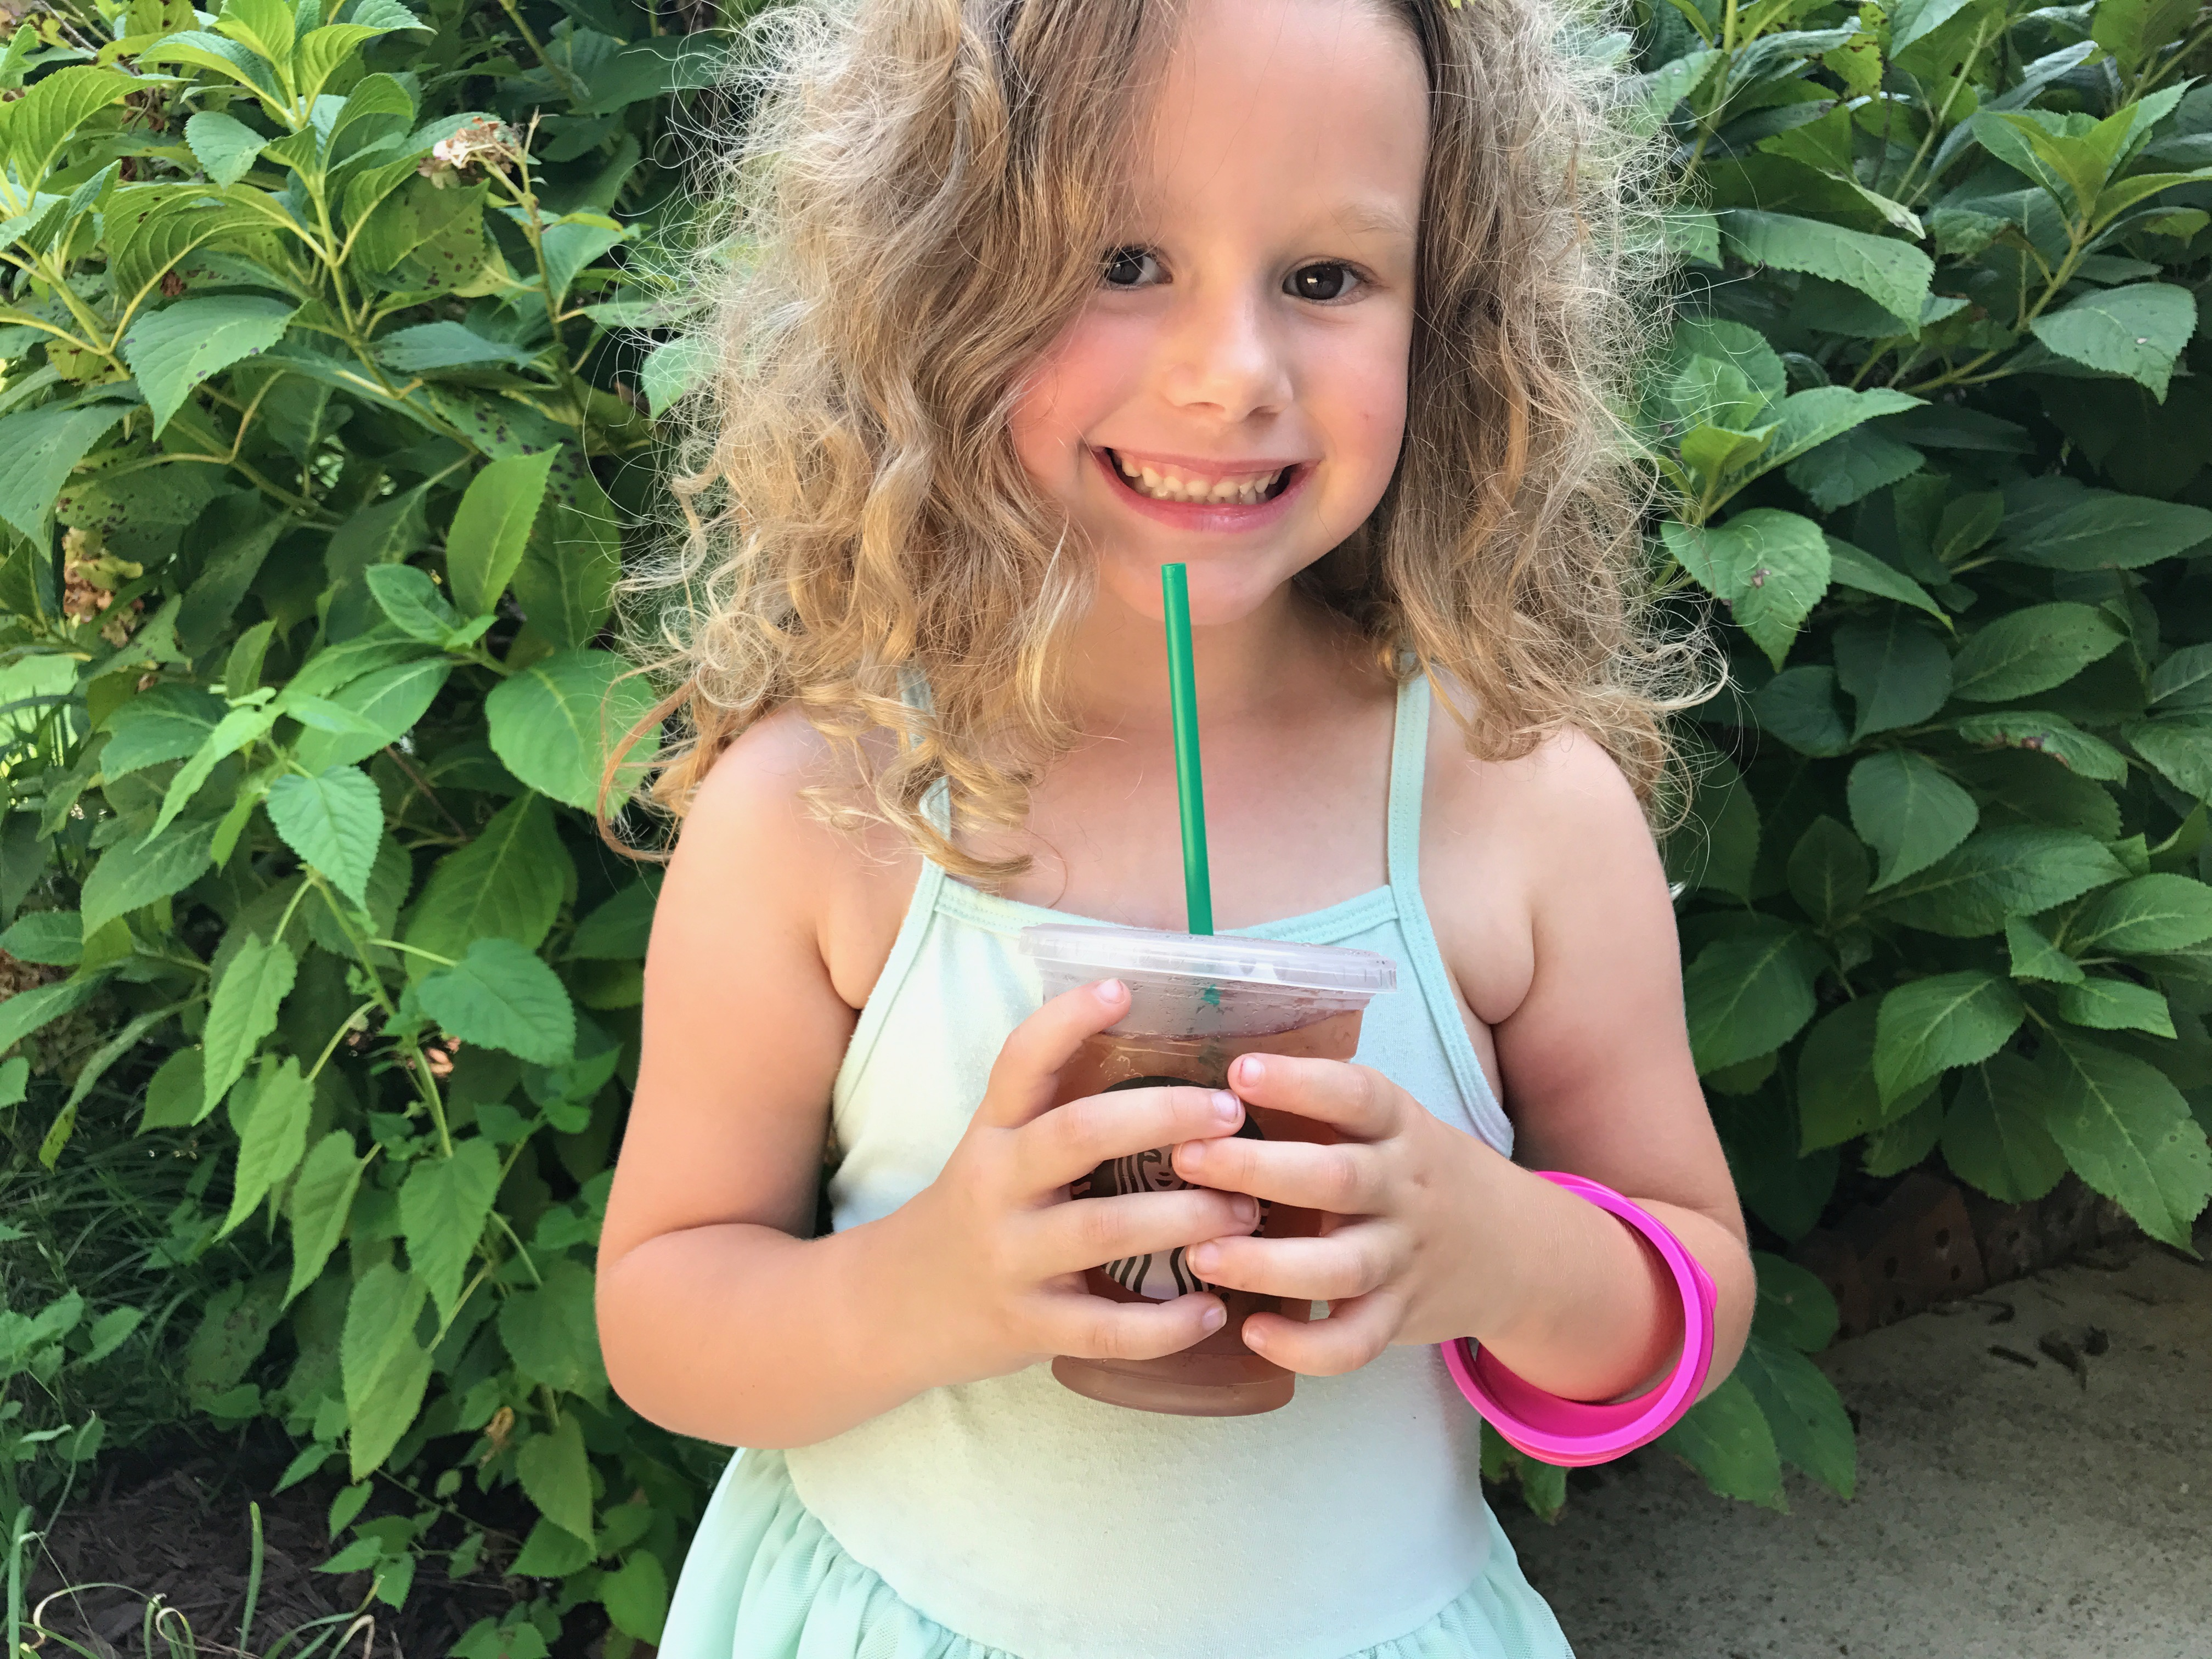 We Asked A Dietitian What To Order For Kids At Starbucks